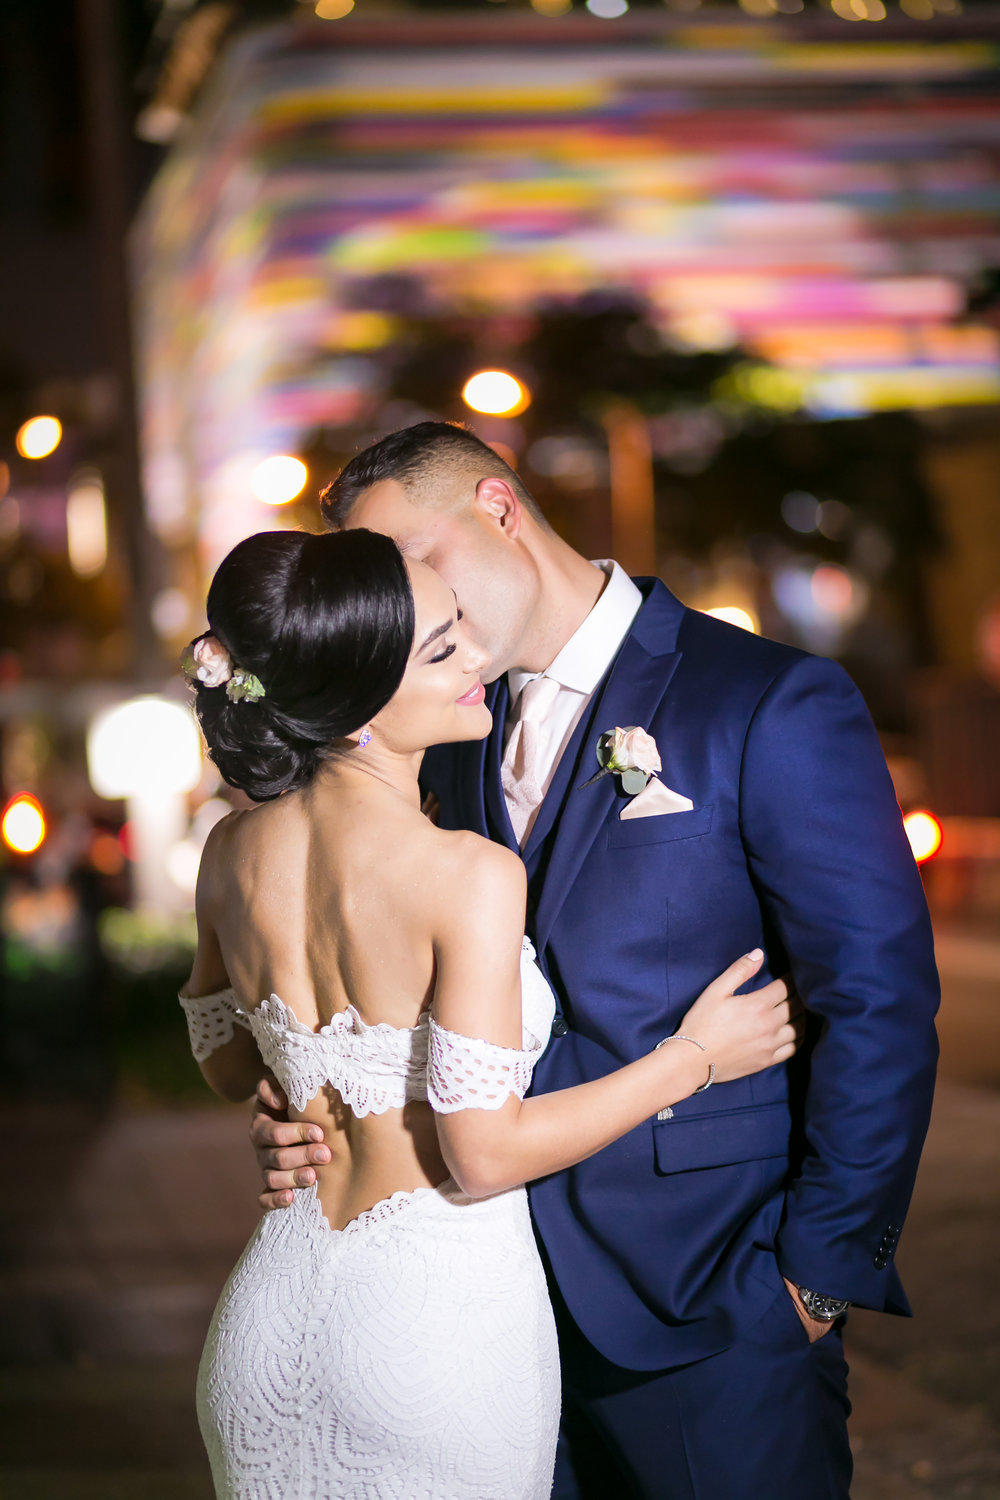 Miami Wedding Photographer - Dolores Lolita Restaurant Wedding